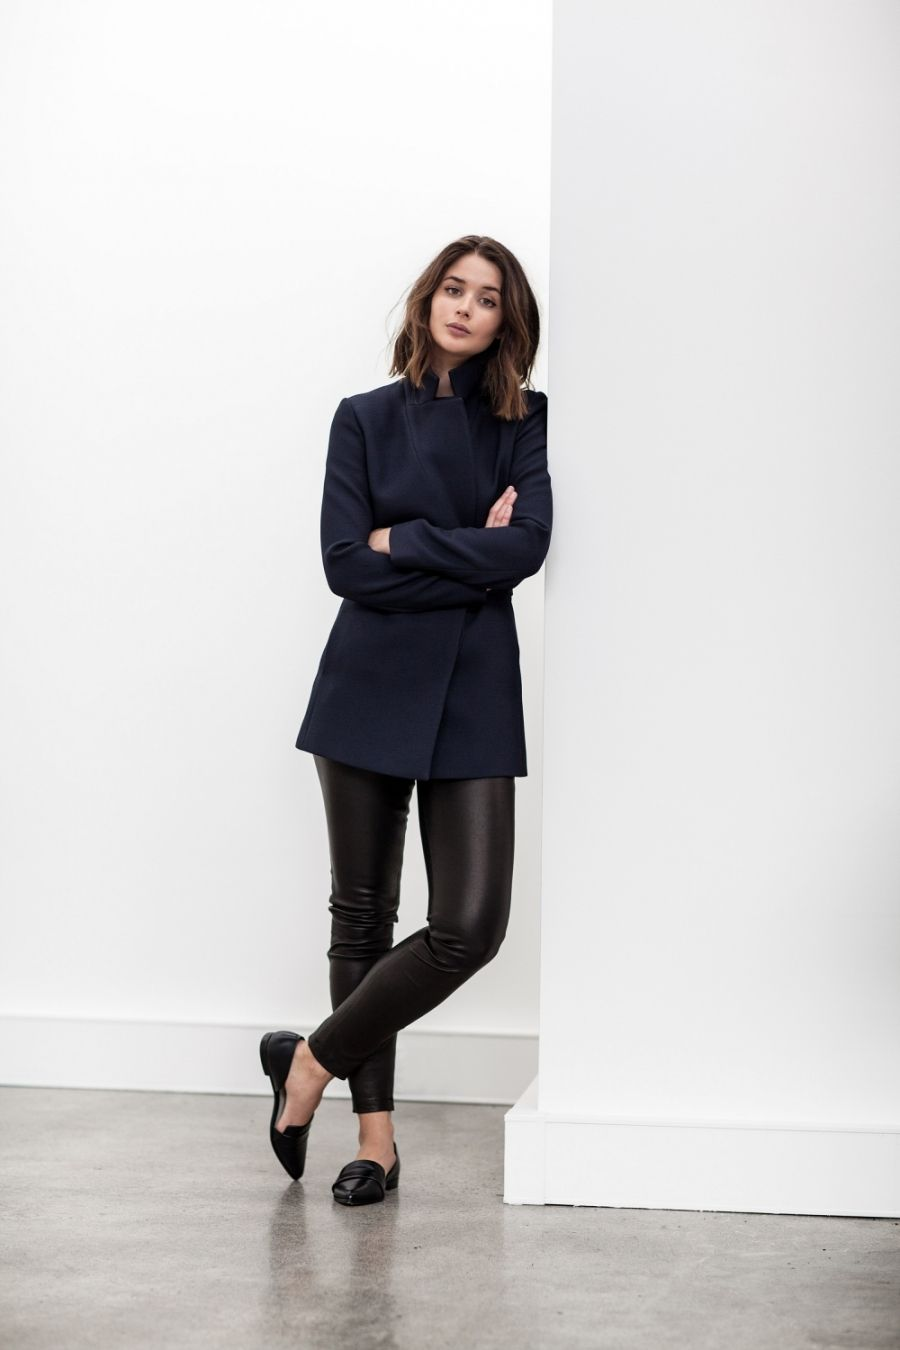 Sara Donaldson shows us another way to get a glamorous spring style, pairing leather leggings with stylish flats and a gorgeous navy jacket. This look is perfect for the cooler days of spring, but can be adapted to be worn whenever and however you like! Outfit: Reiss.